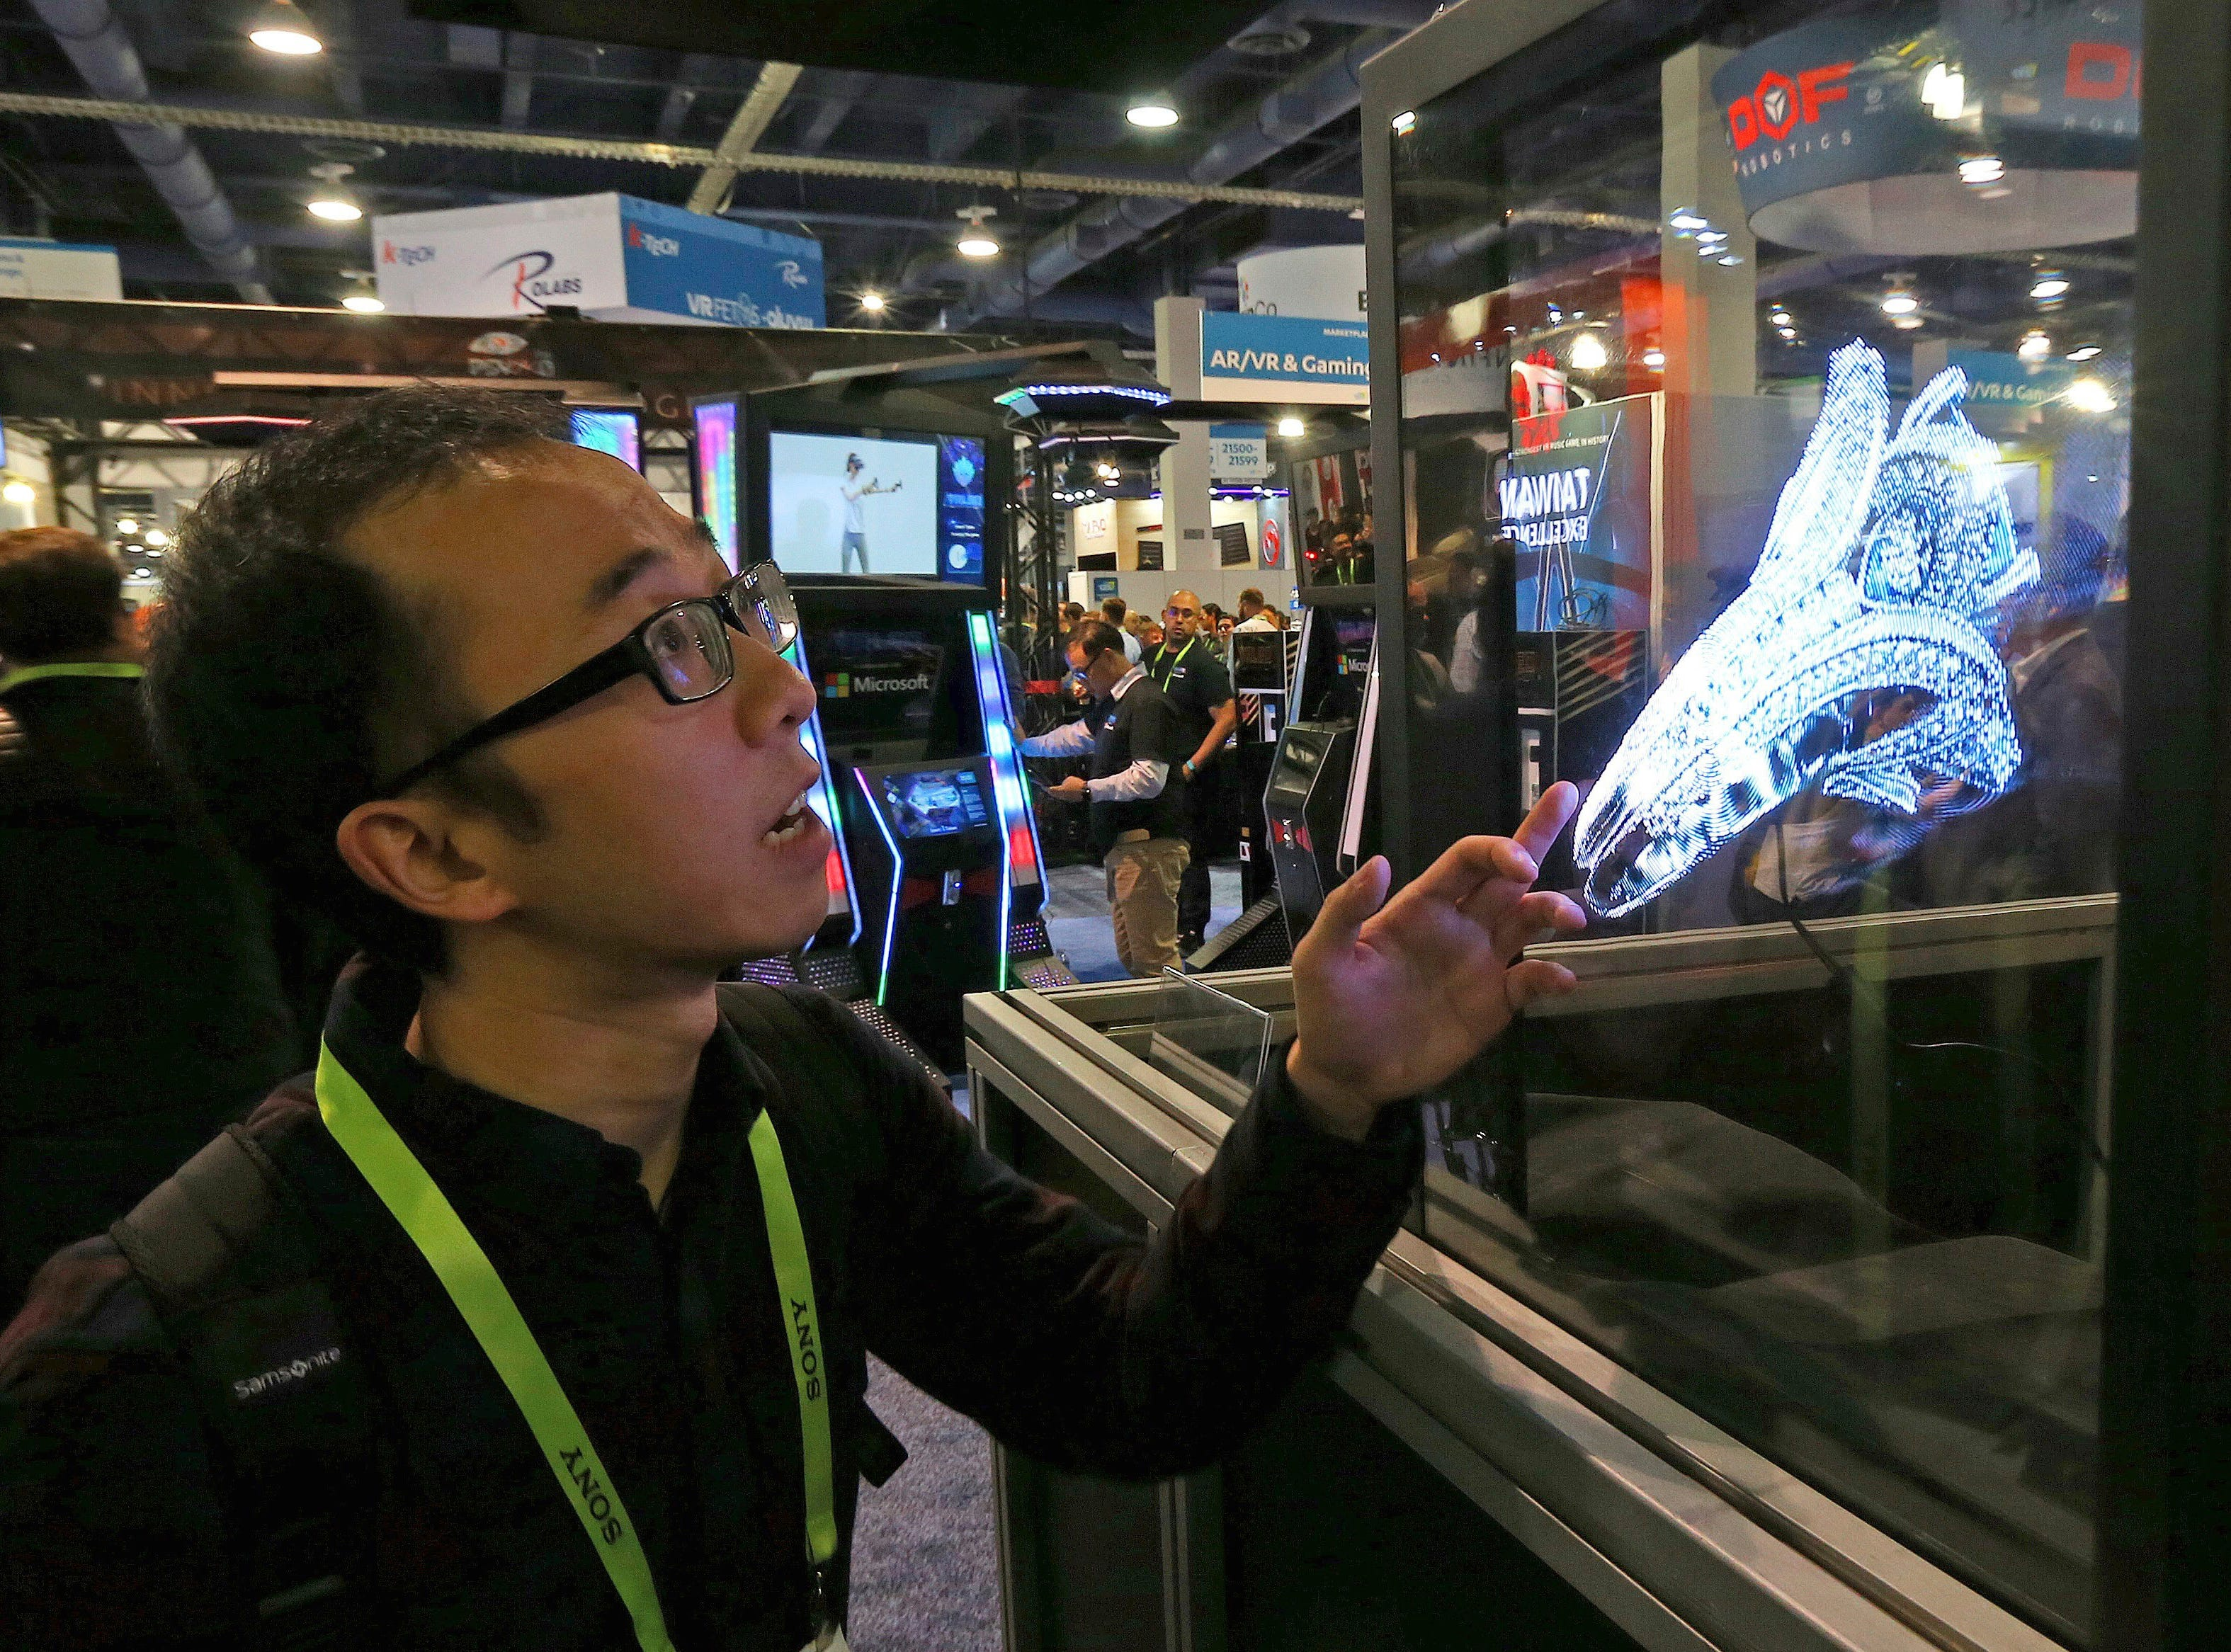 A CES attendee checks out a Hologruf 3D hologram at CES International on Wednesday, Jan. 9, 2019, in Las Vegas.